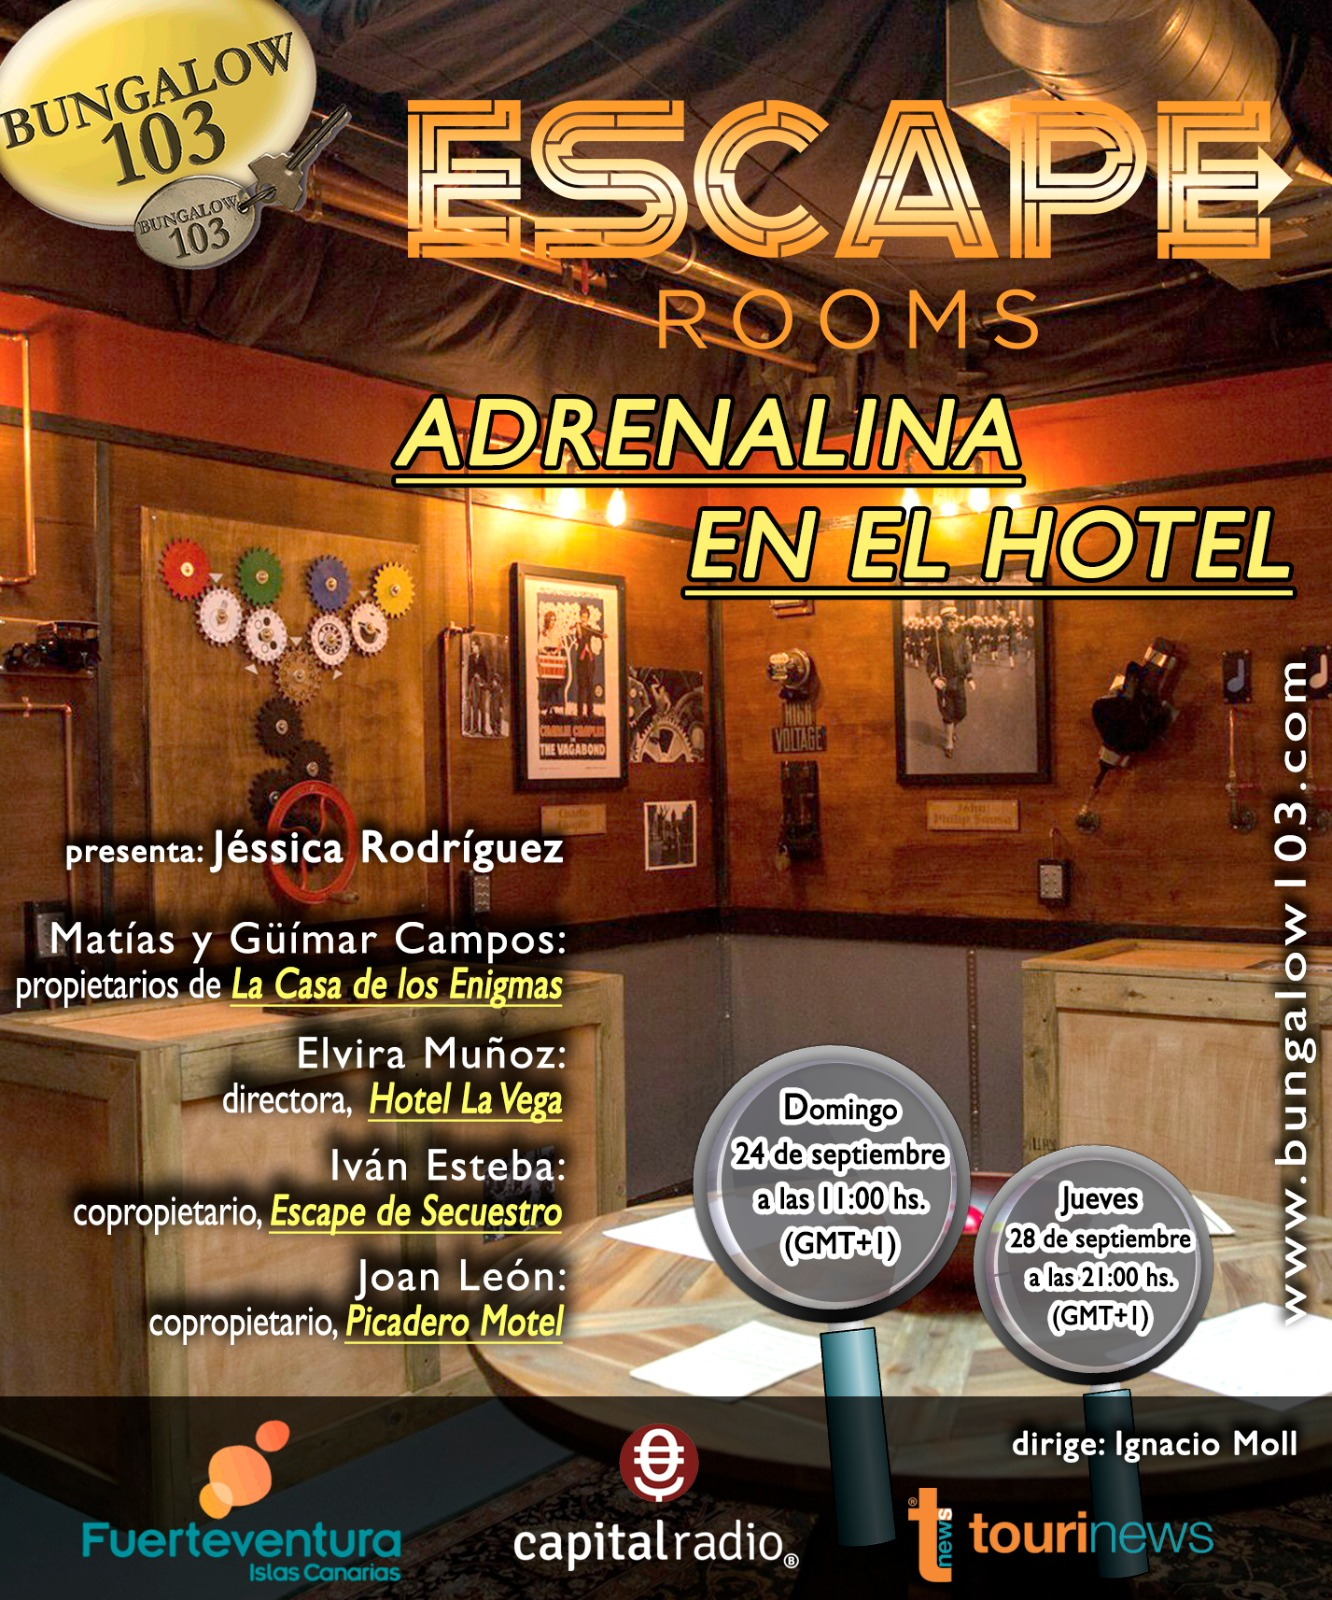 ESCAPE ROOMS, ADRENALINA EN EL HOTEL